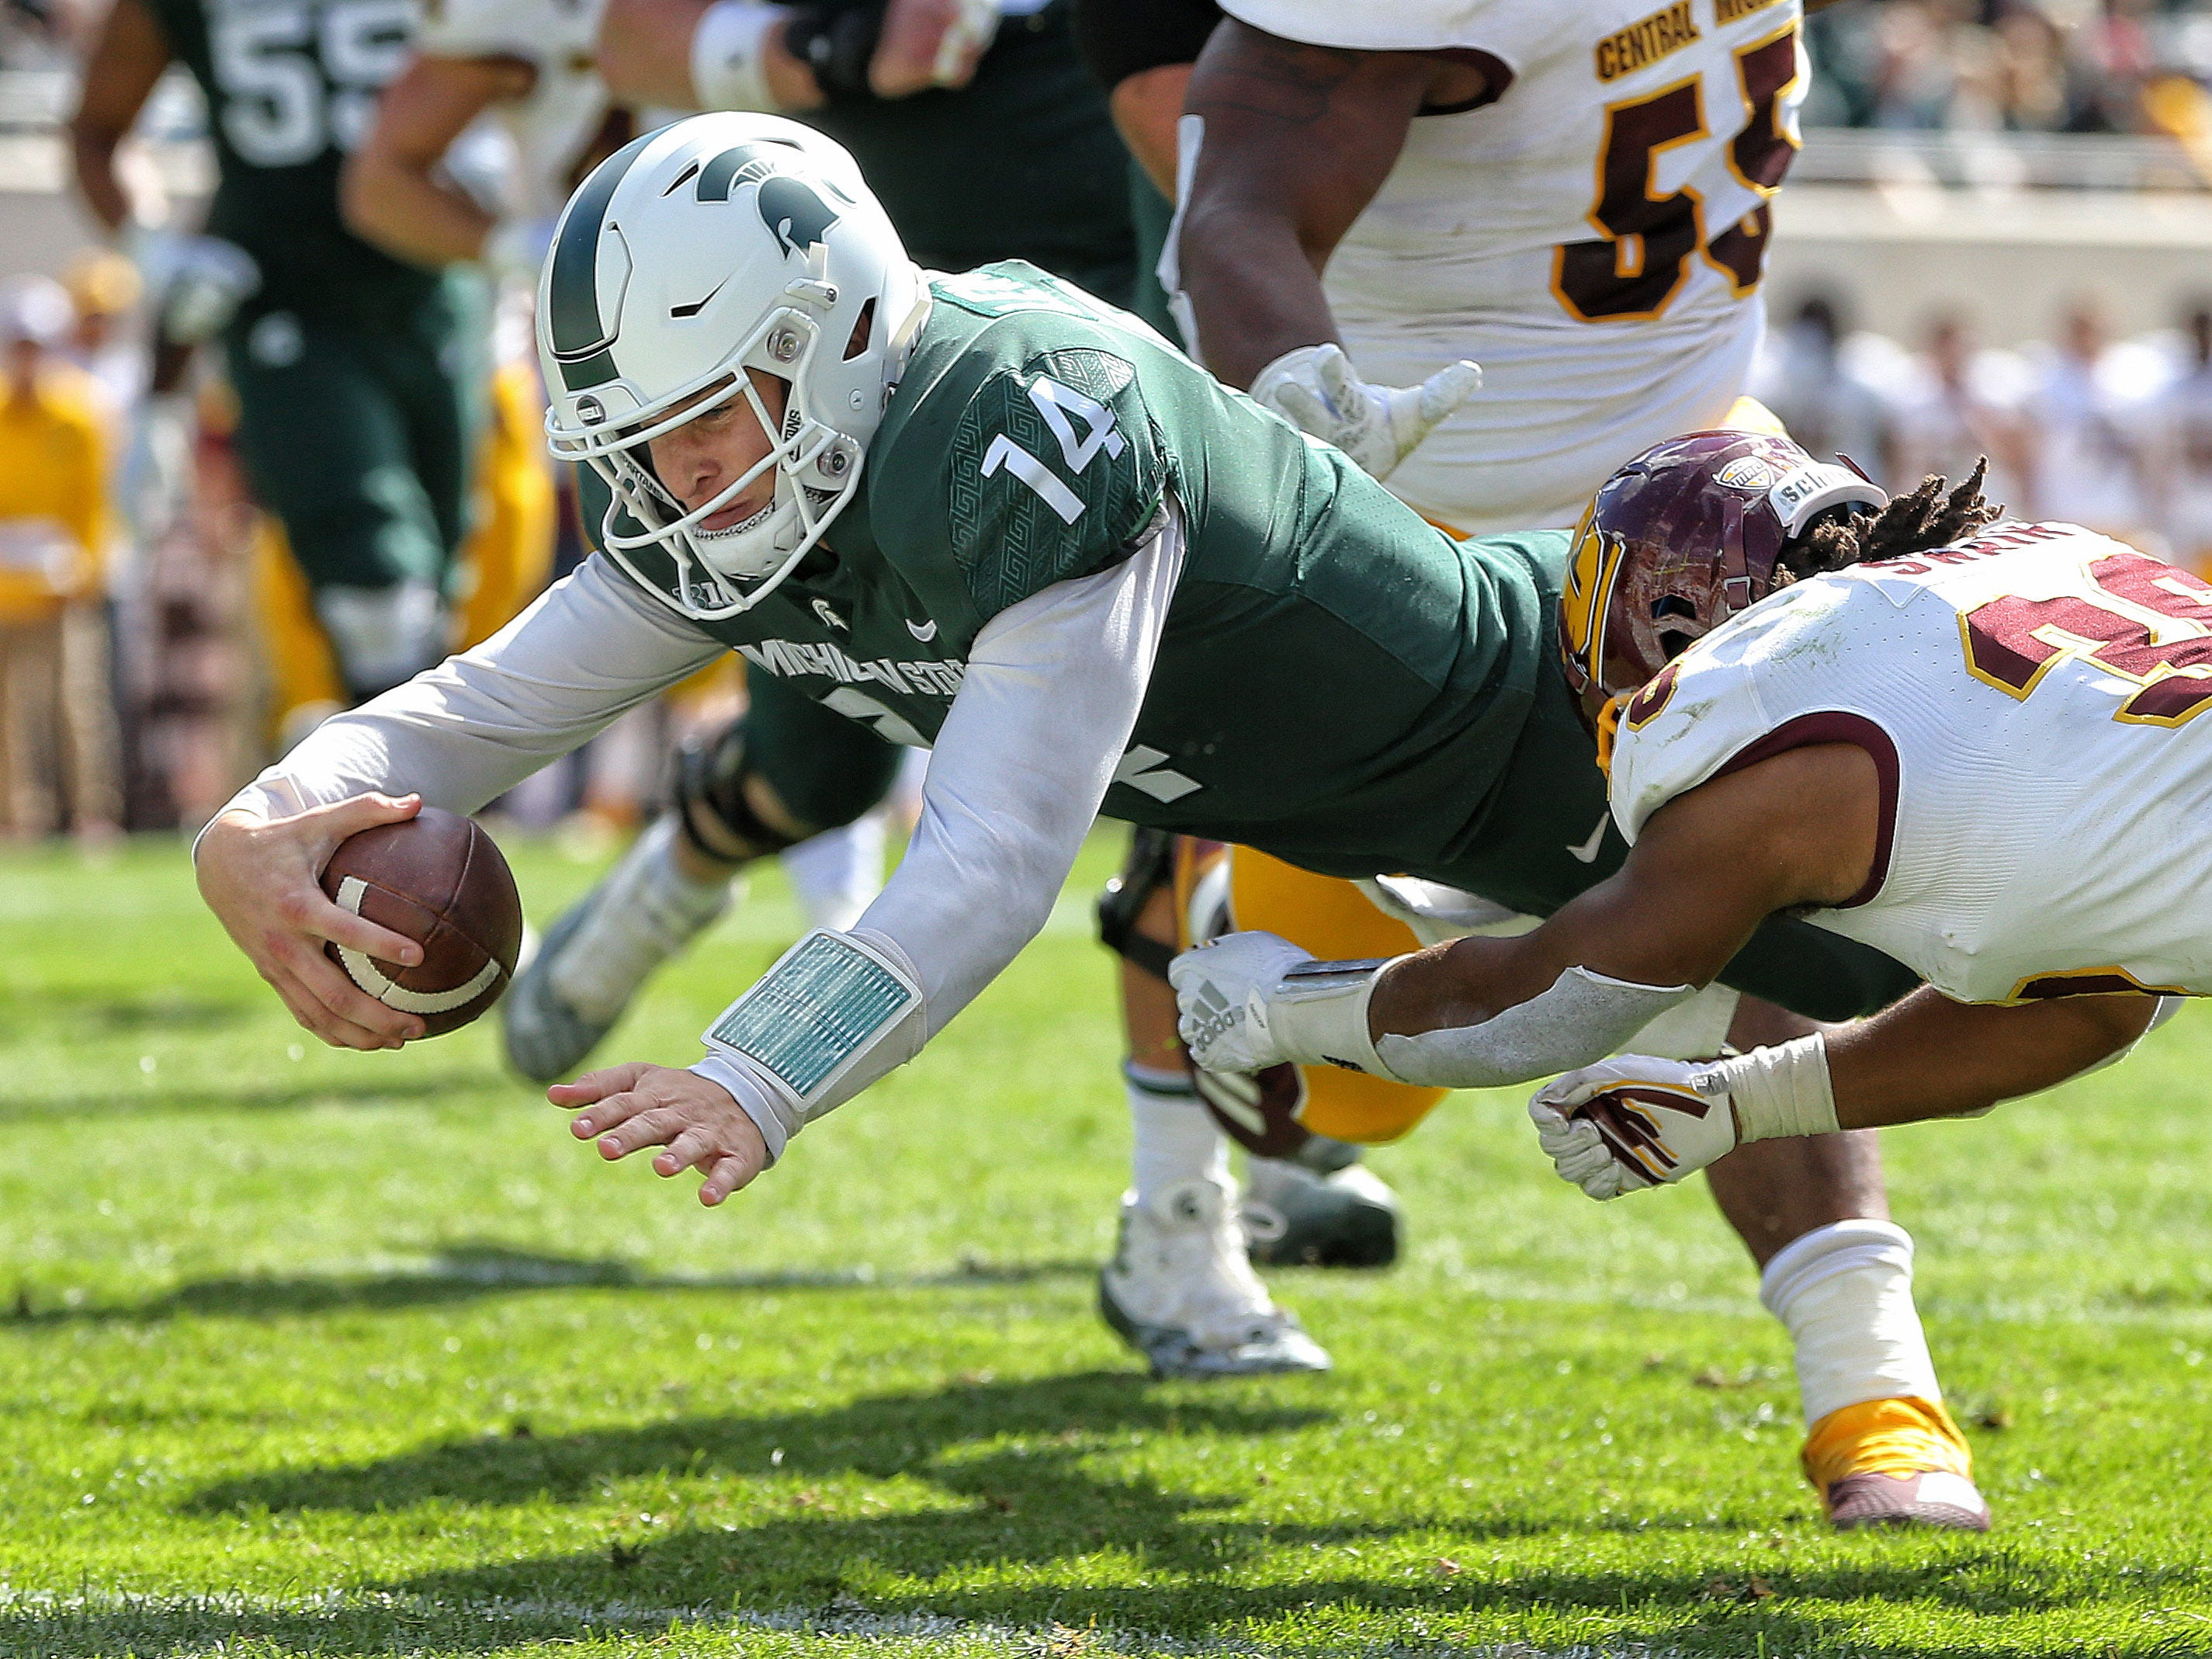 Michigan State Spartans quarterback Brian Lewerke (14) dives into the end zone during the first half against the Central Michigan Chippewas at Spartan Stadium.